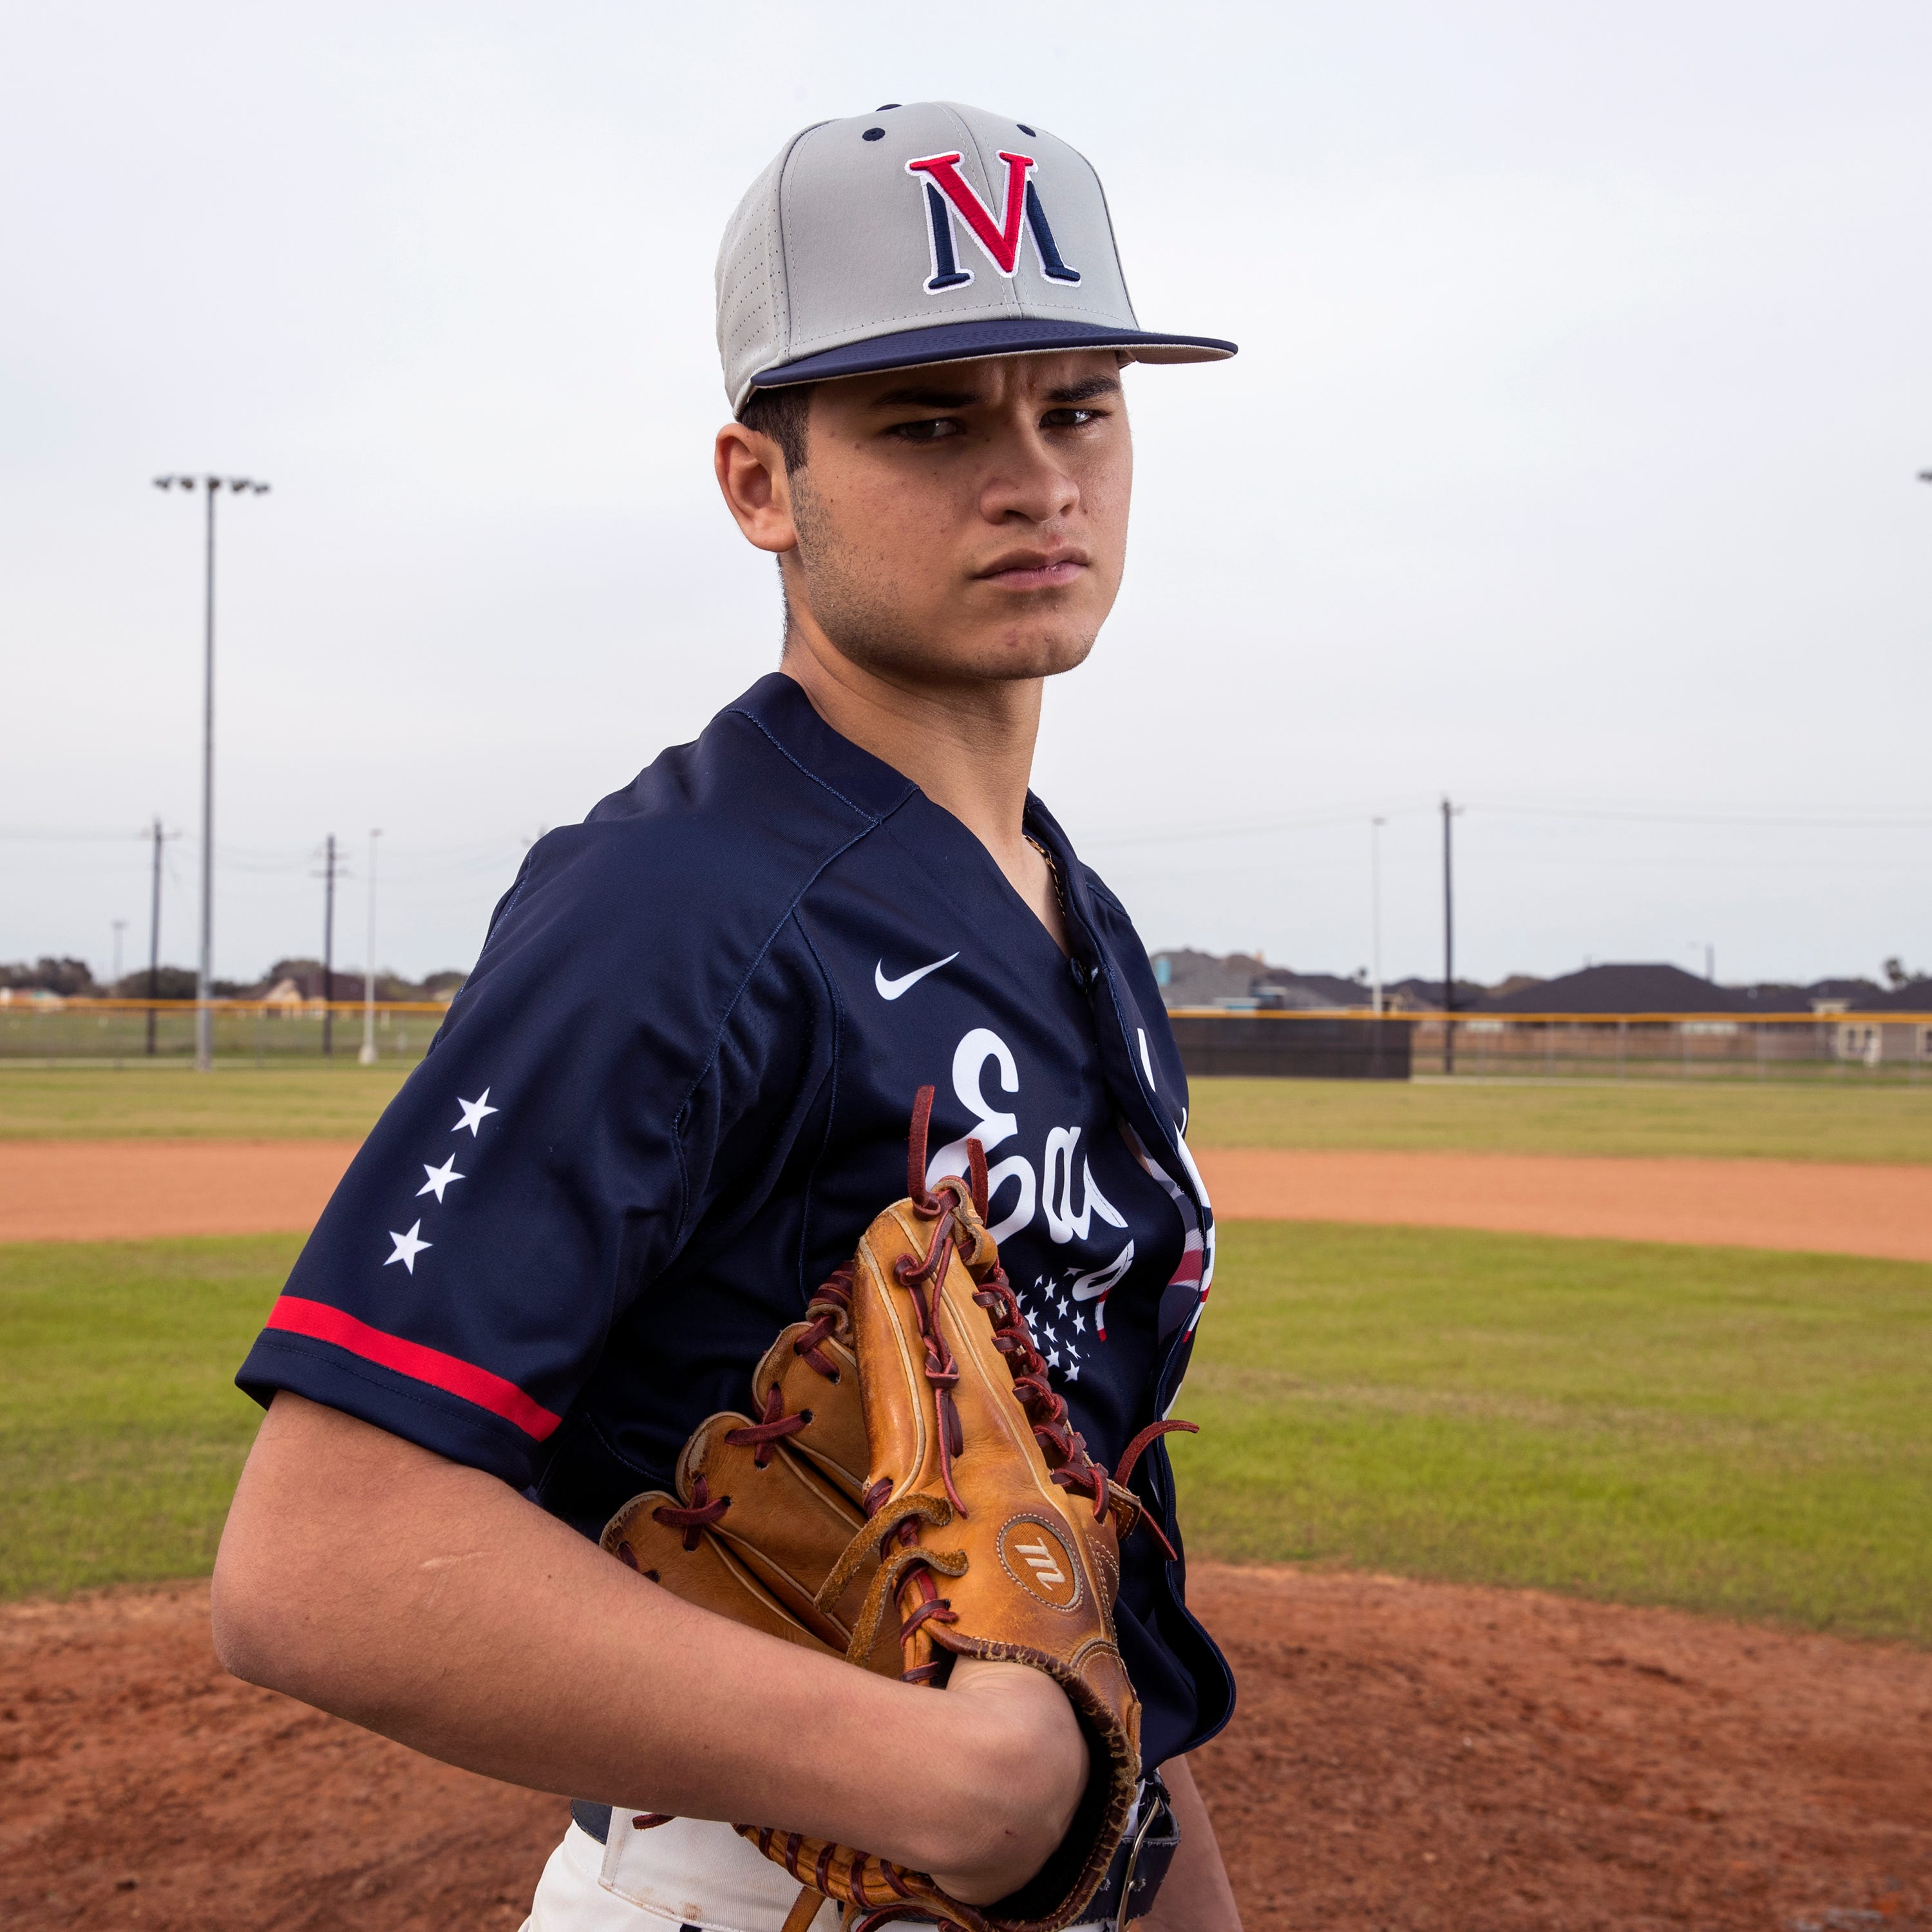 HARDBALL 2019: Area has wealth of pitchers for 2019 high school baseball season